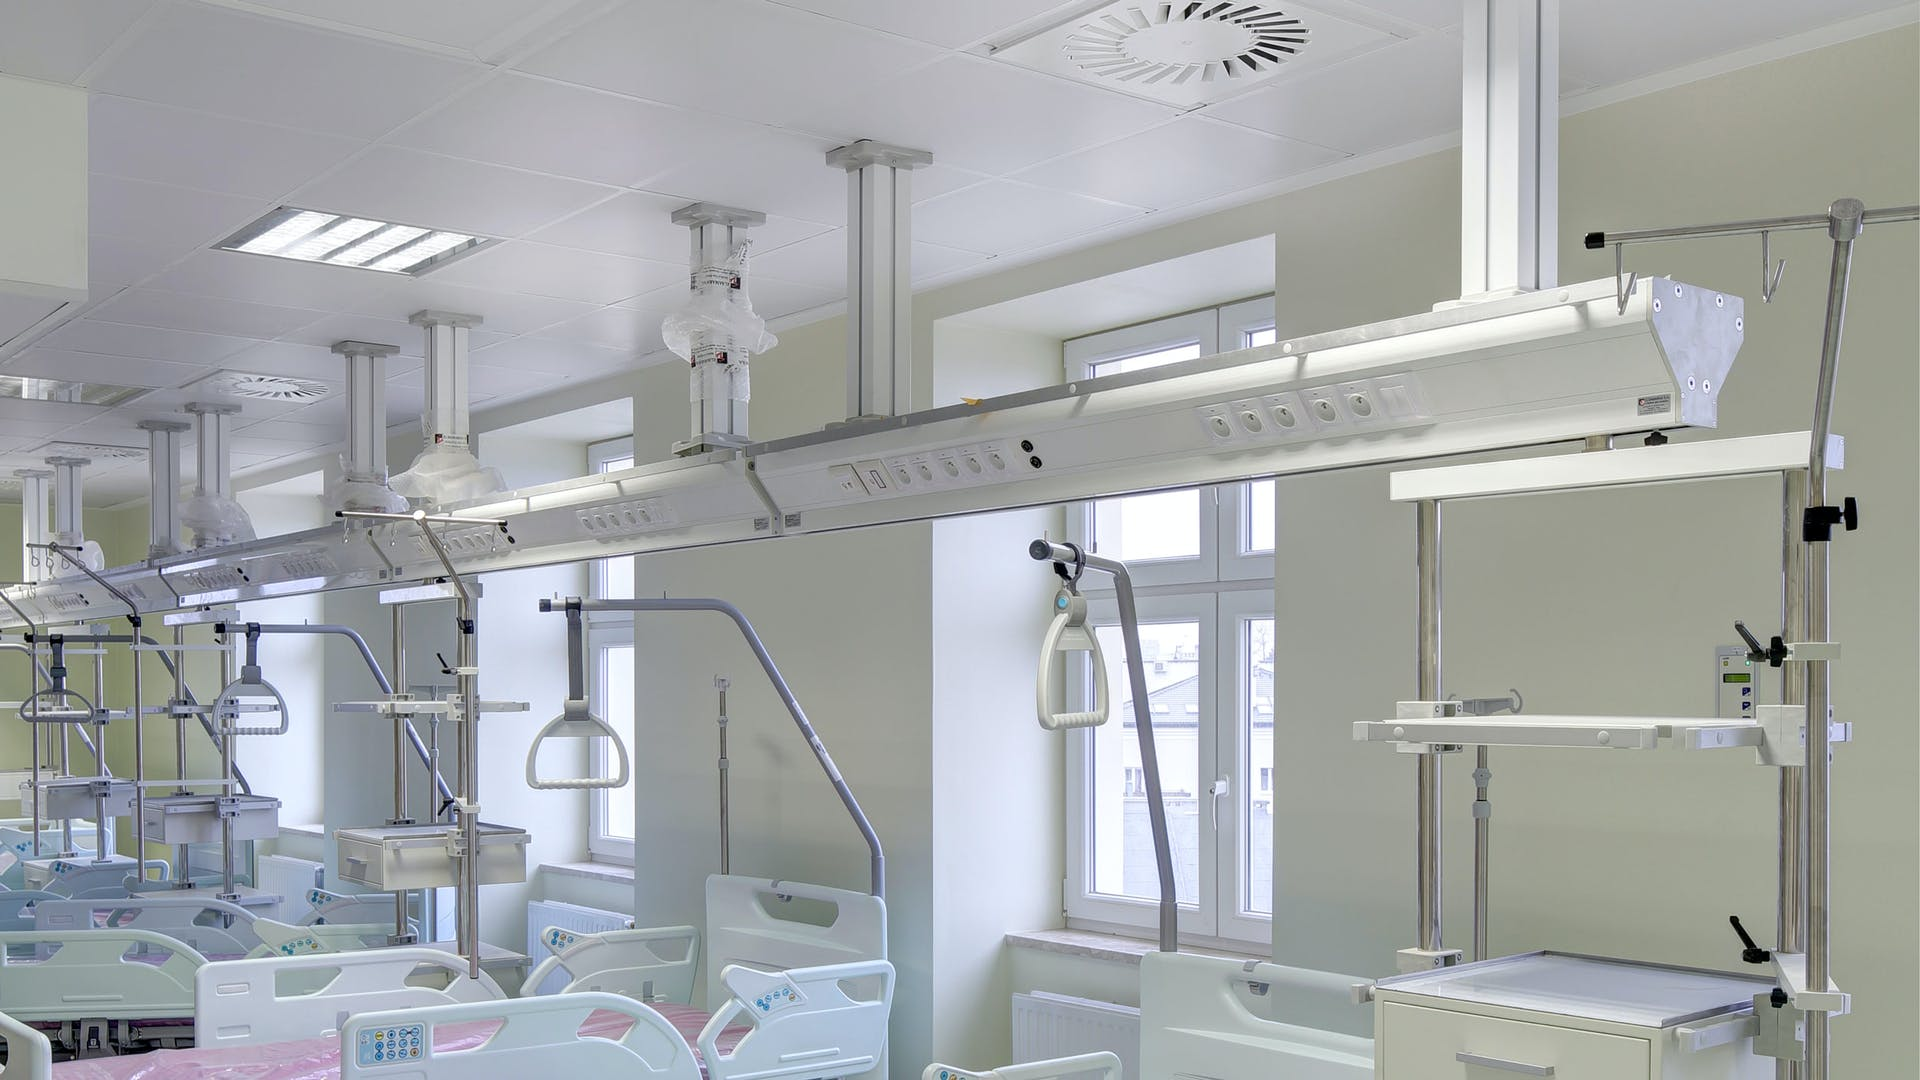 Acoustic ceiling in hospital with Rockfon MediCare Block ceiling tiles (Cleanroom Classificication ISO Class 2)